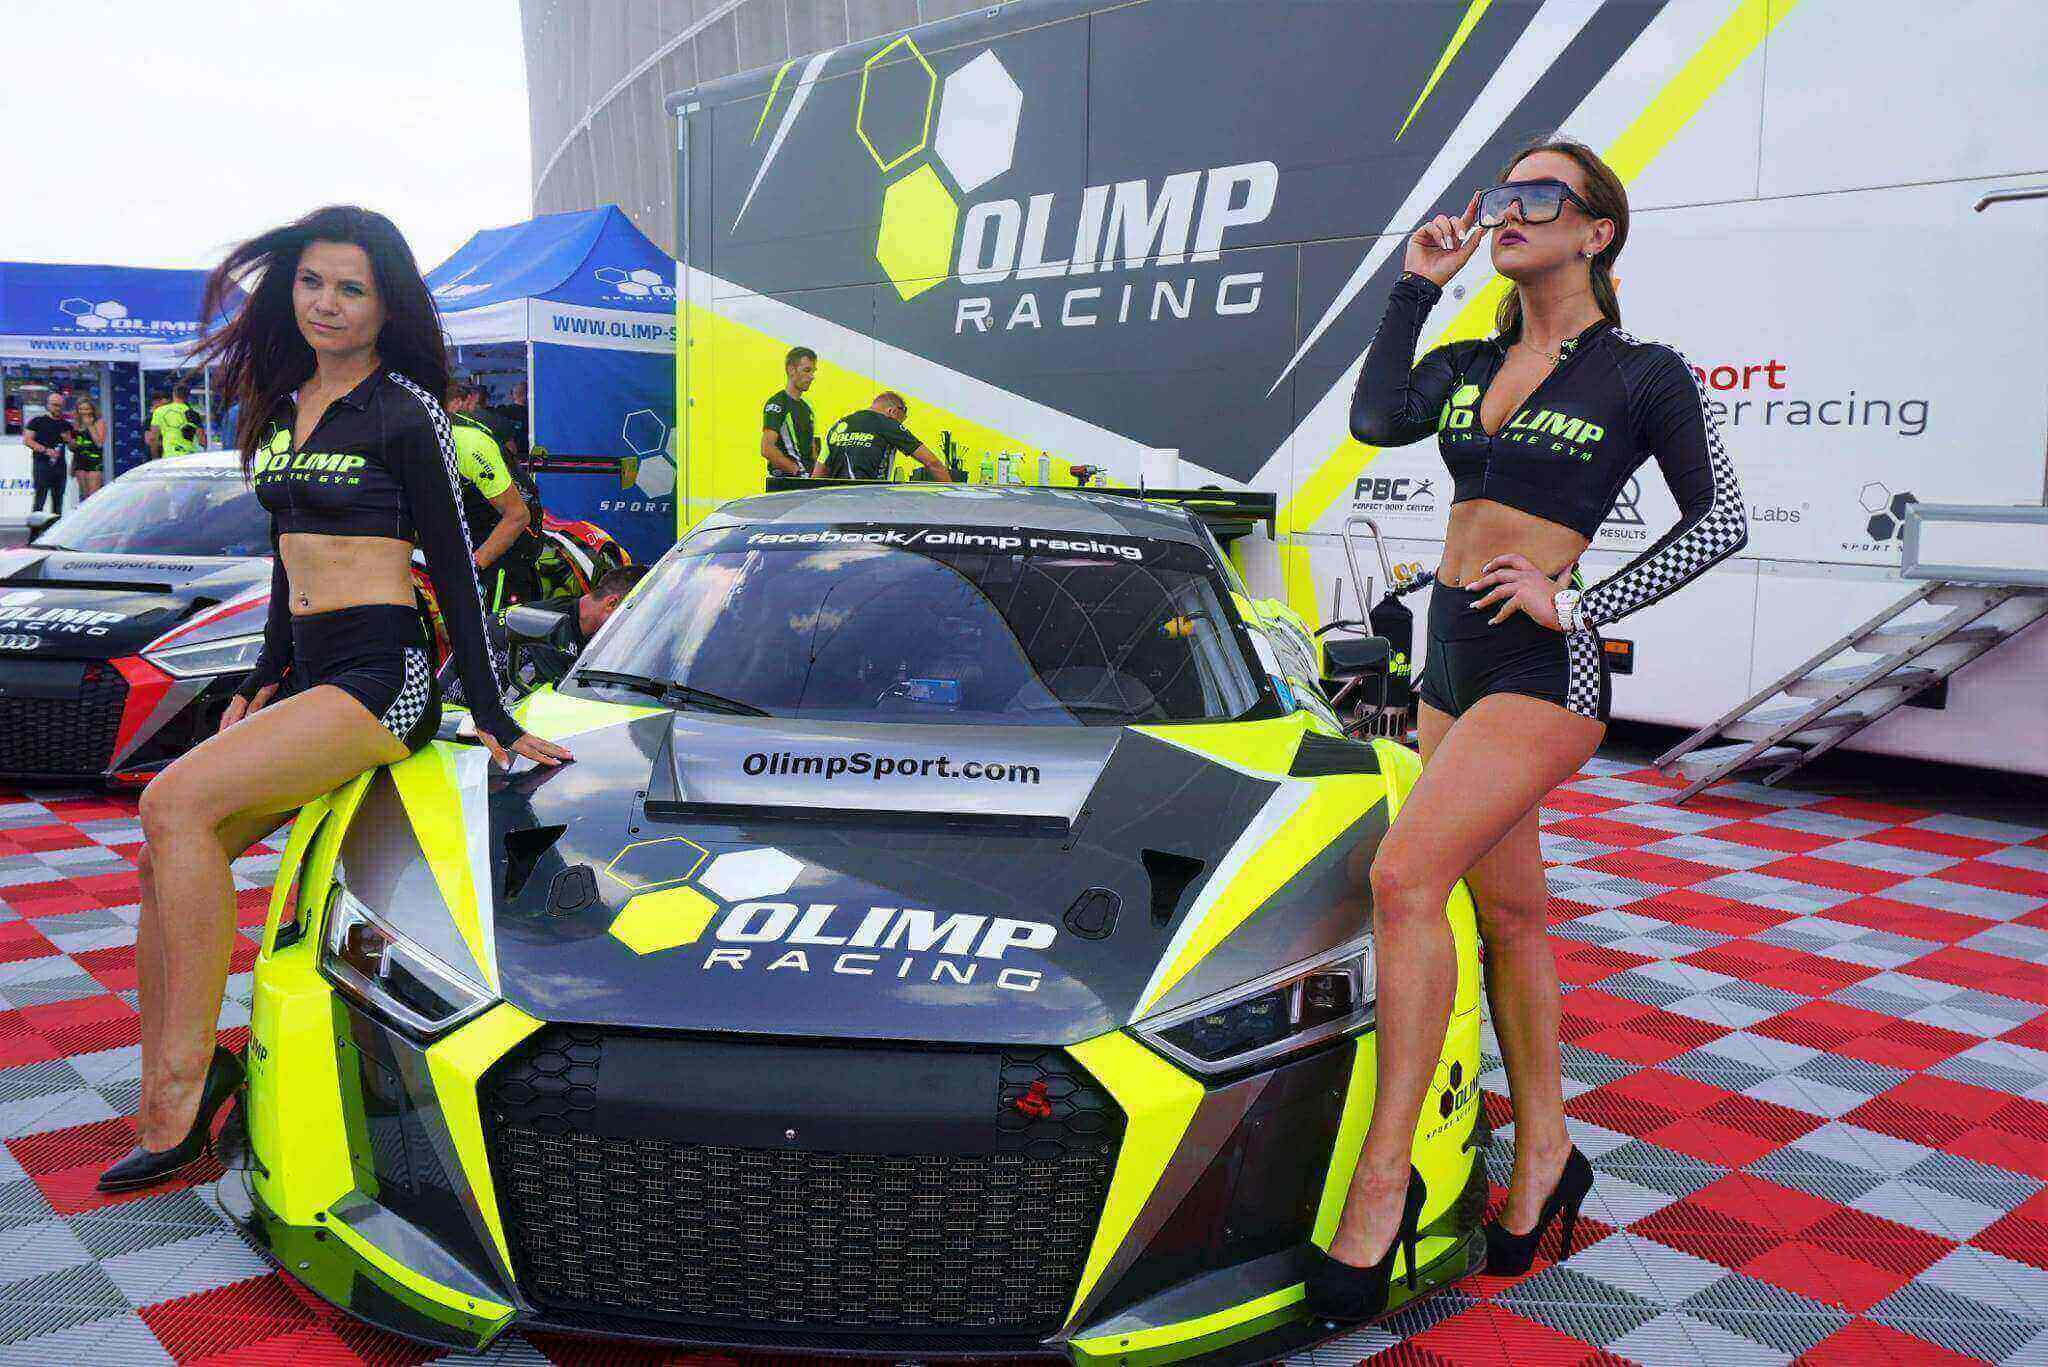 Olimp and fast cars?  Our first-rate performance at Raceism 2018!